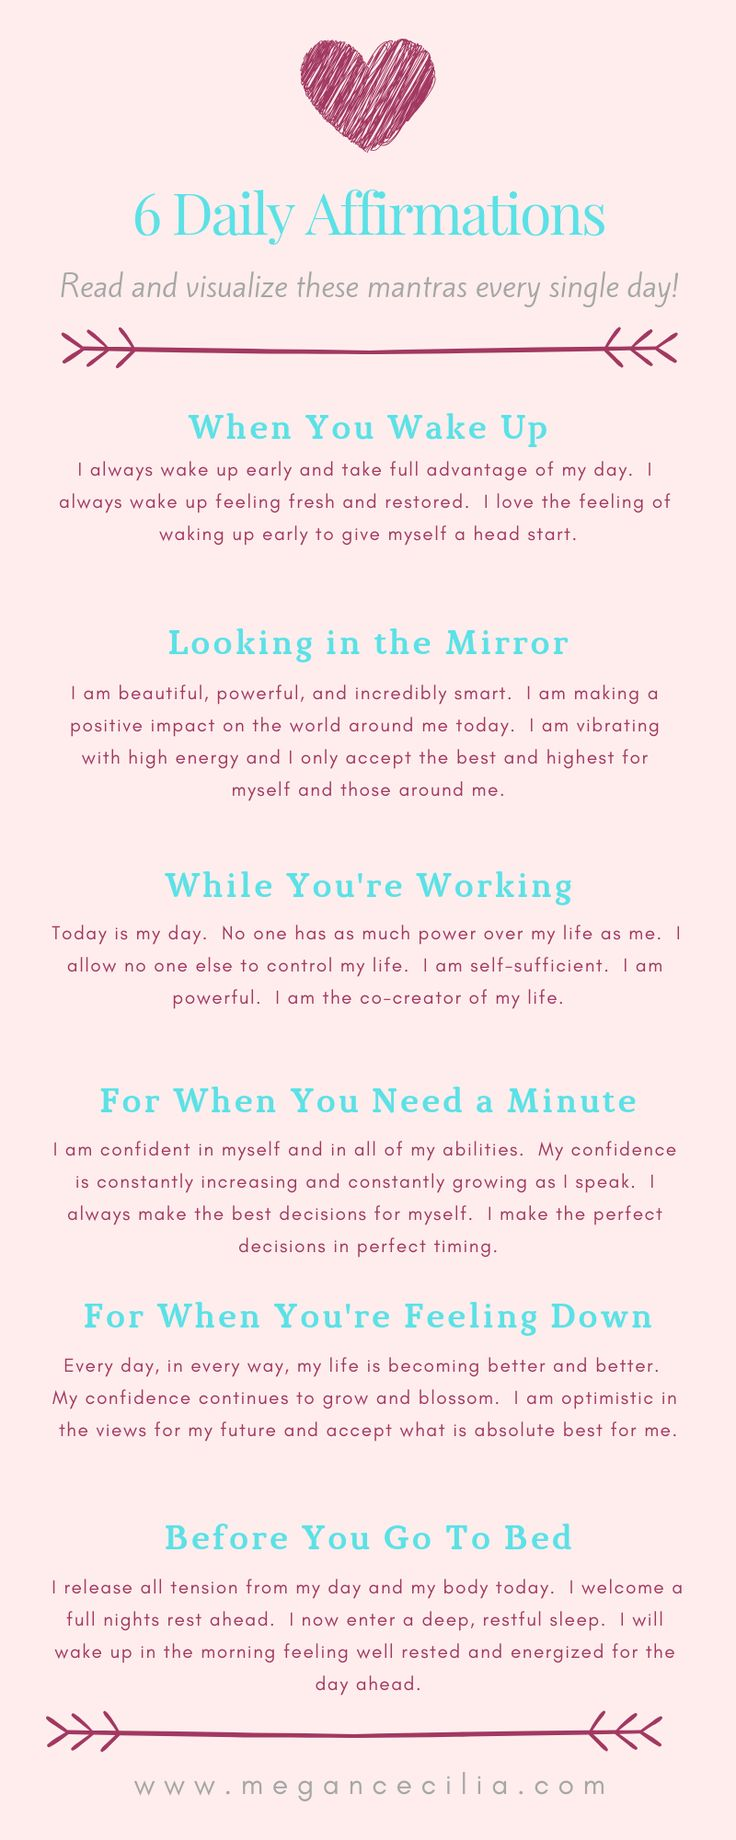 6 Daily Affirmations